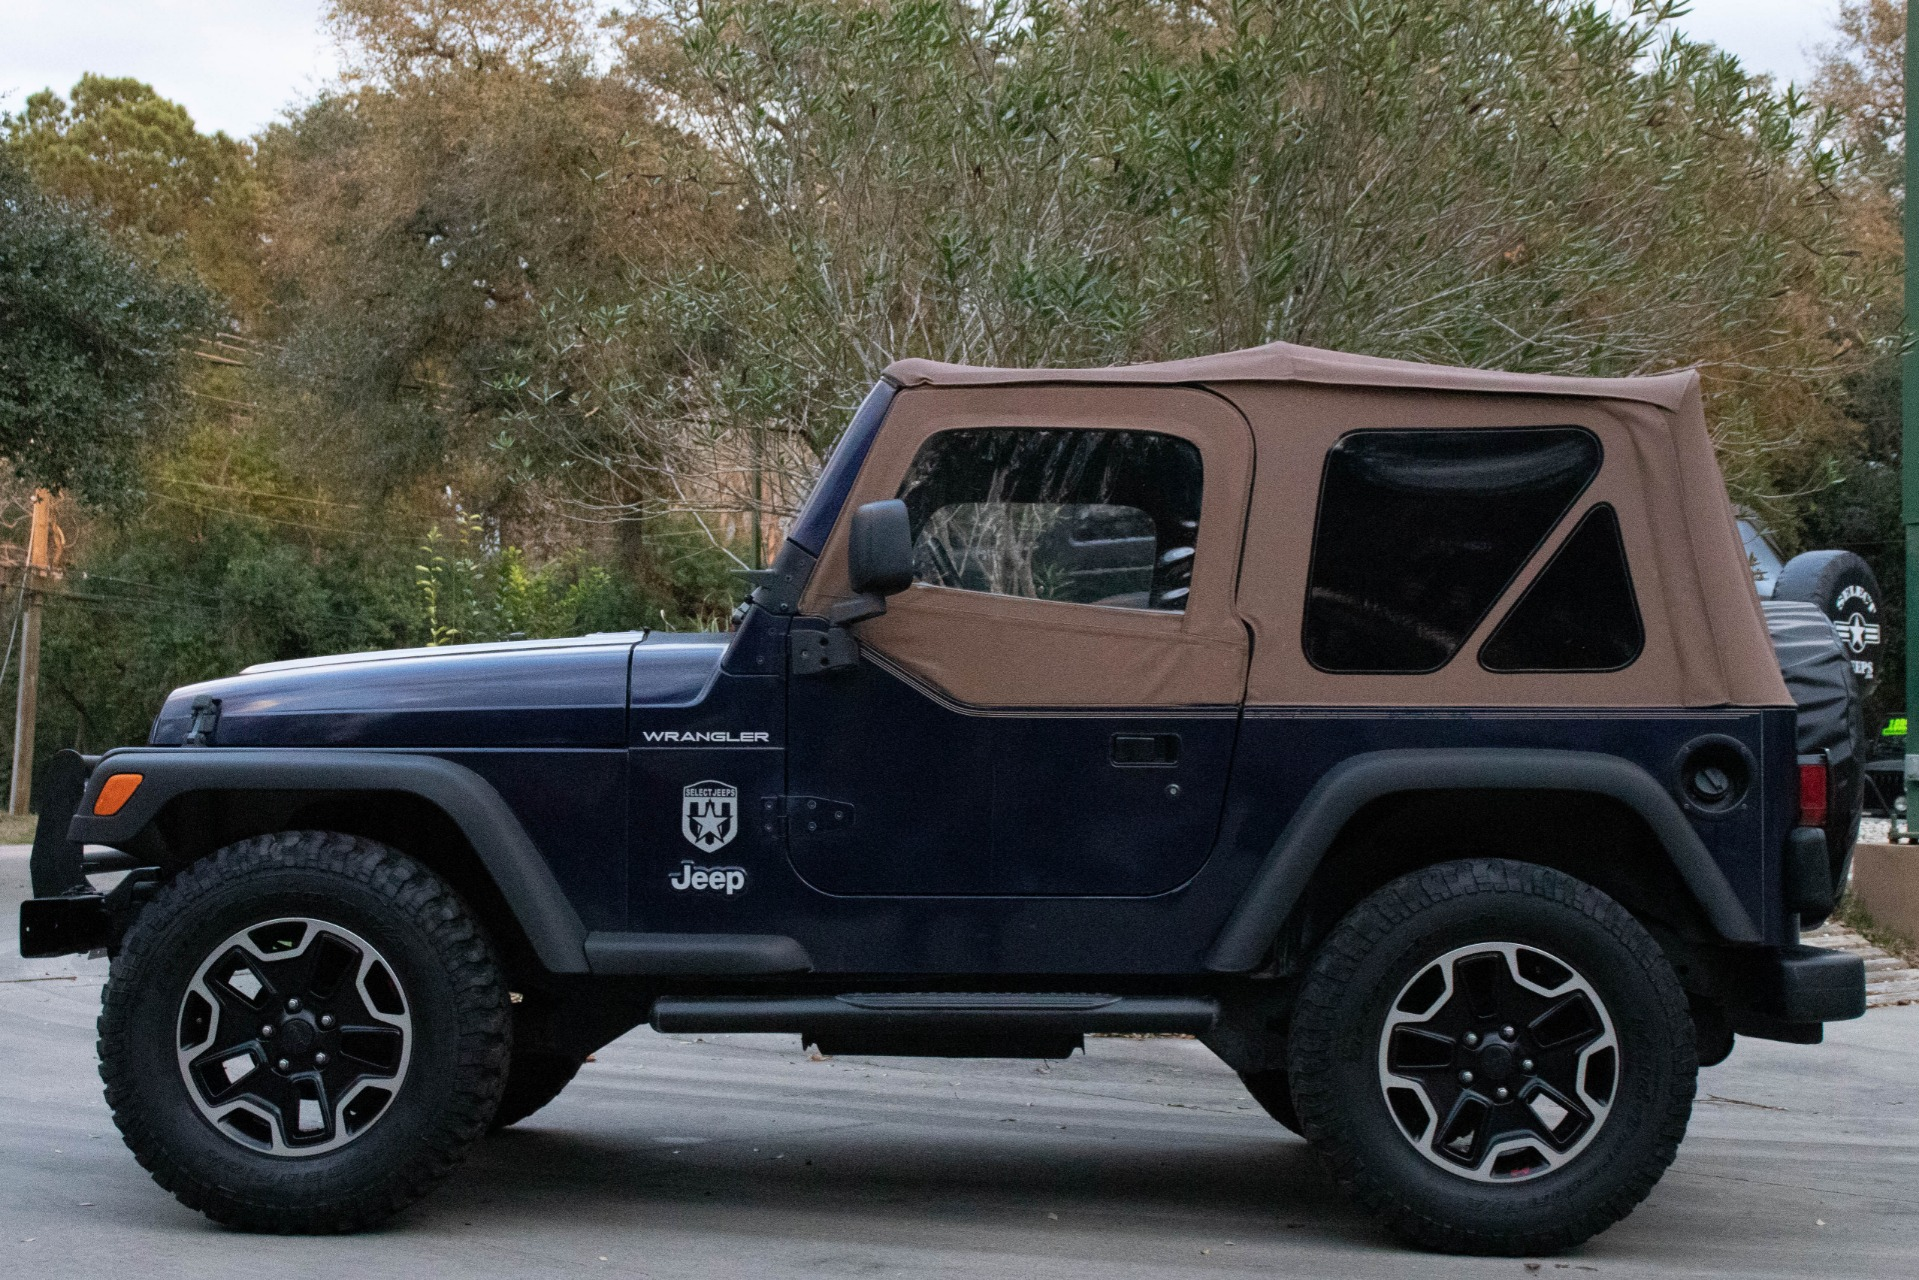 Used 1998 Jeep Wrangler SE For Sale ($9,995) | Select ...